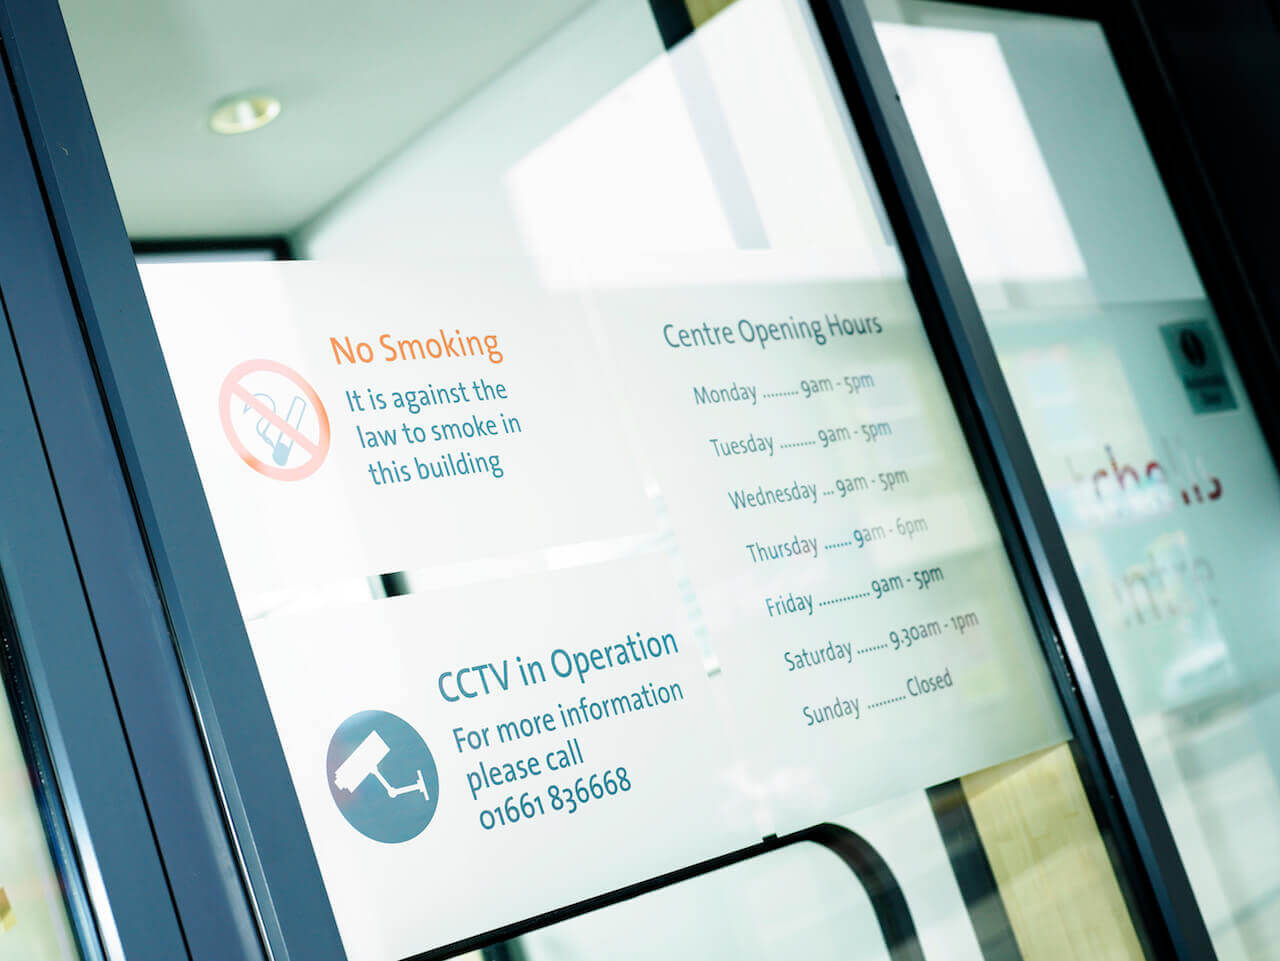 Workplace information graphics on the doors of the Spetchells Centre in Prudhoe